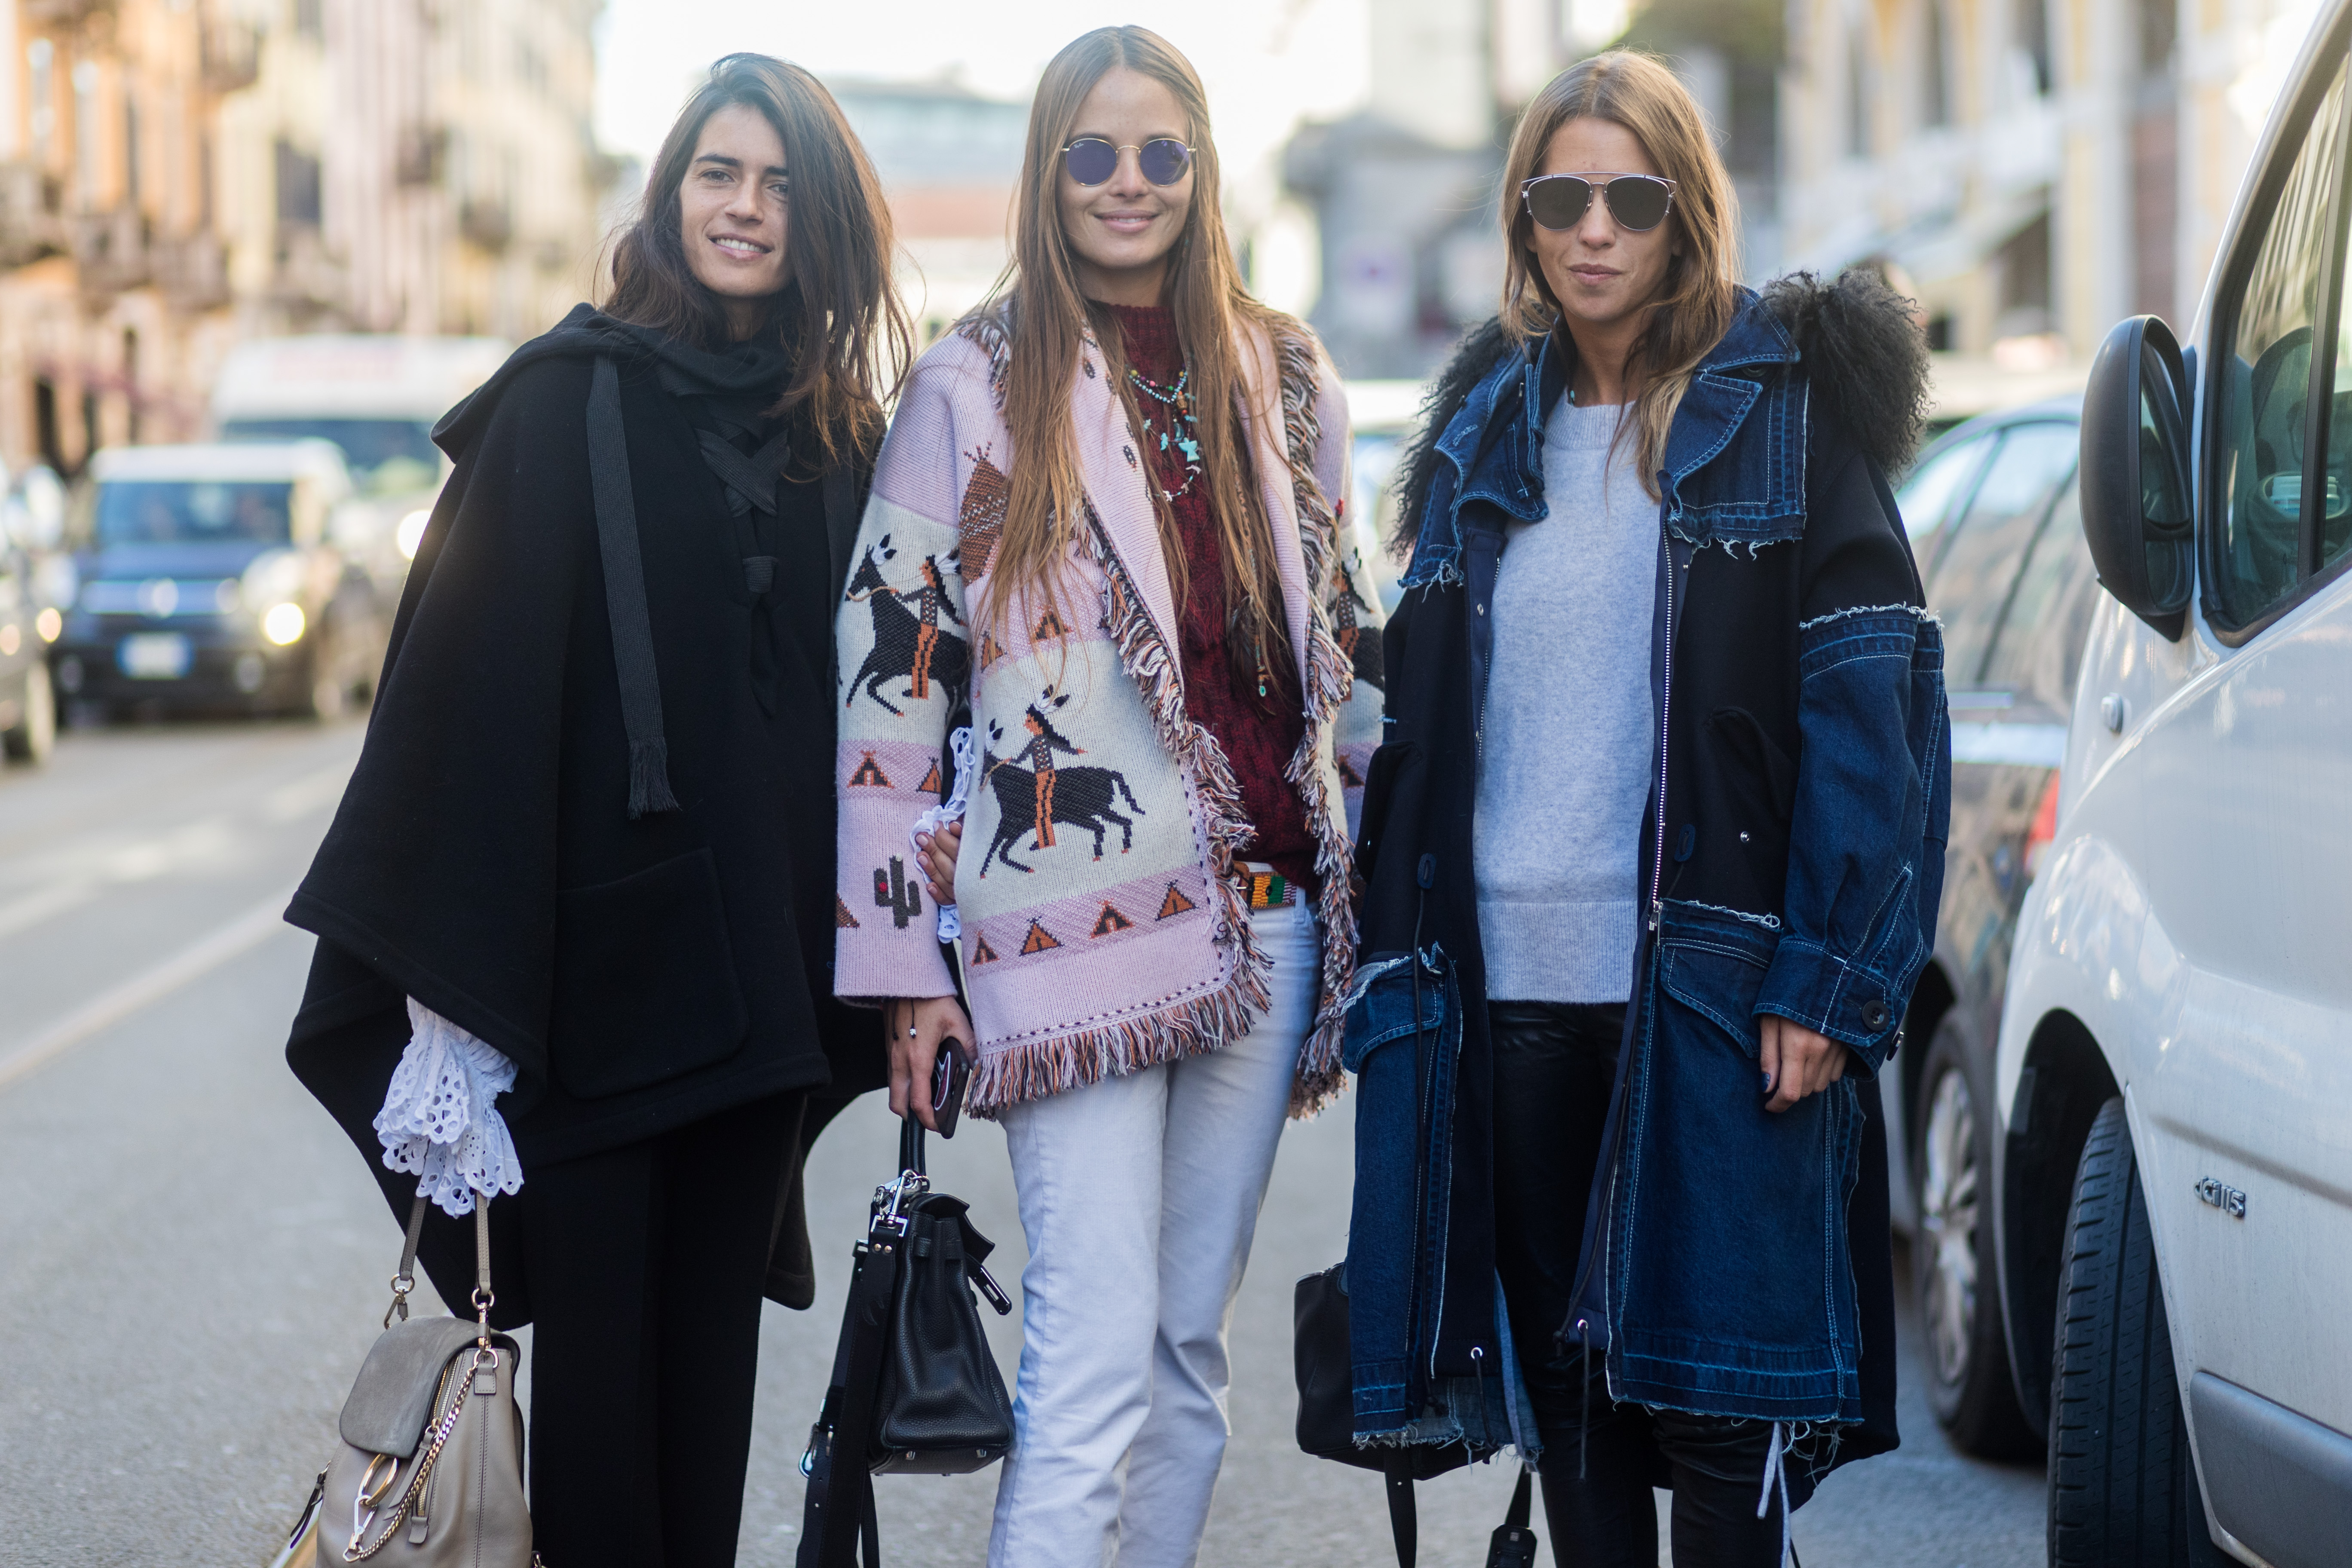 <p>Men's Fashion Week in Milan brought some surprises - and they were awesome ones.</p> <p>Dolce & Gabbana's use of social media stars and celebrity offspring instead of professional models gave the show a buzz that it may not have had otherwise. Plus, the overall use of more models of colour was a welcome and long-overdue switch up, which made the week feel vibrant and fresh.</p> <p>Speaking of, the street style also felt distinctly modern with bright colours, snappy accessories and cool hats mixed and matched in innovative, interesting ways. And while the runway is where it happens - what the fashion crowd wears is often a better indication of upcoming trends.</p> <p>Click through and see the styles that we'll all be wearing when the mercury drops.</p> <p>Image: Getty.</p>